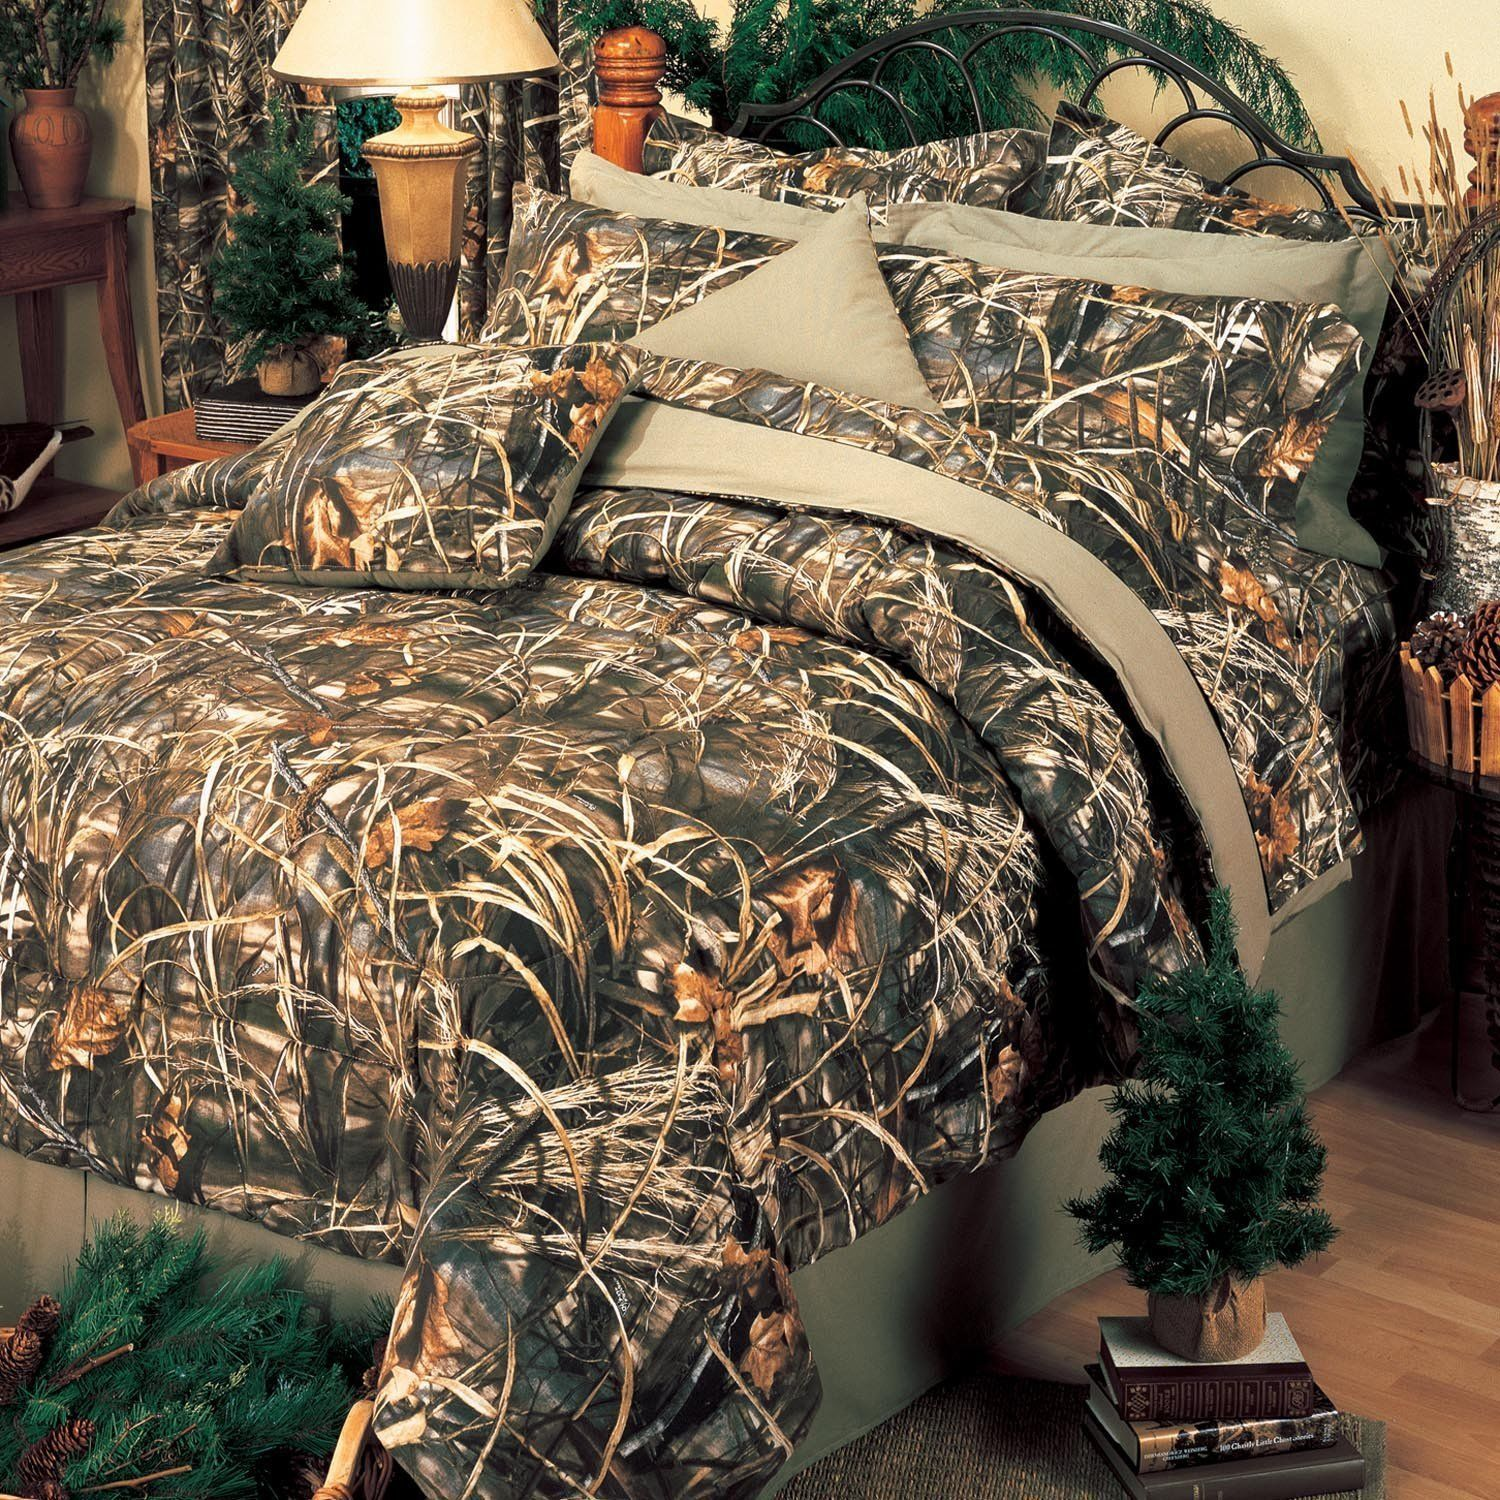 Queen Bed Set Realtree Camo Comforter Sheets Camouflage Bedding Green Pillow New